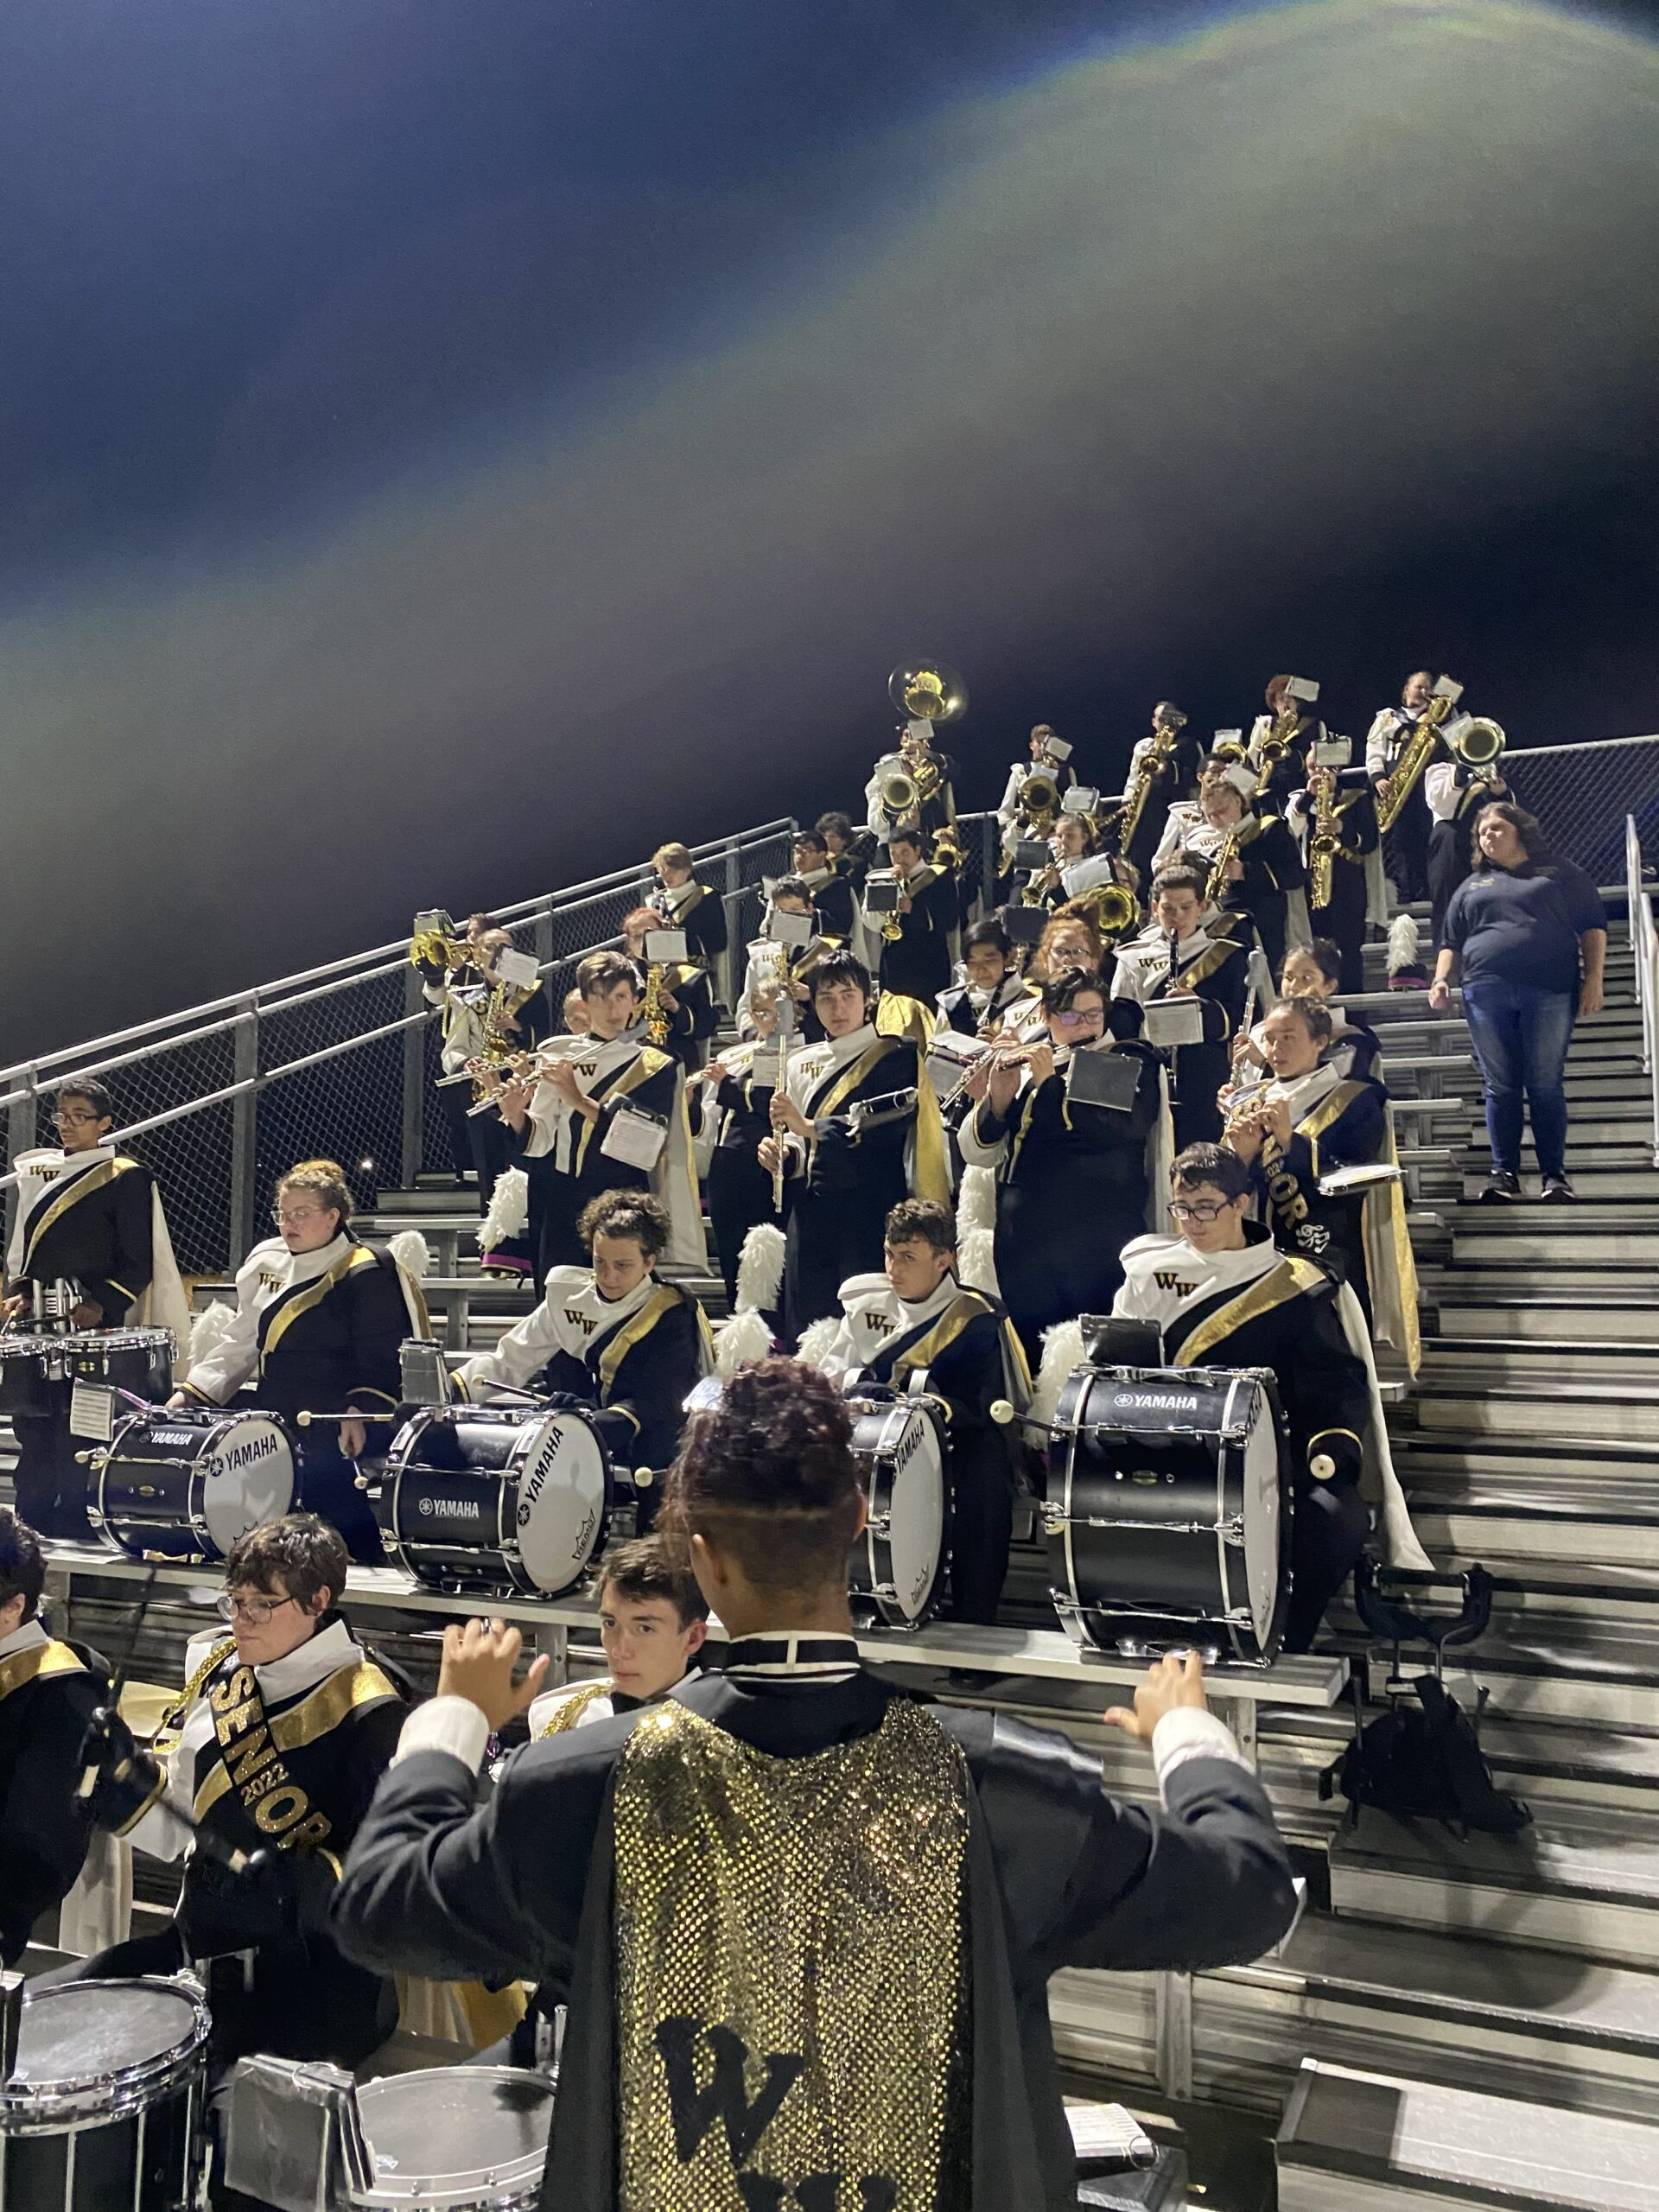 Public Invited to WW Cavalcade of Bands on Thurs. Oct. 14